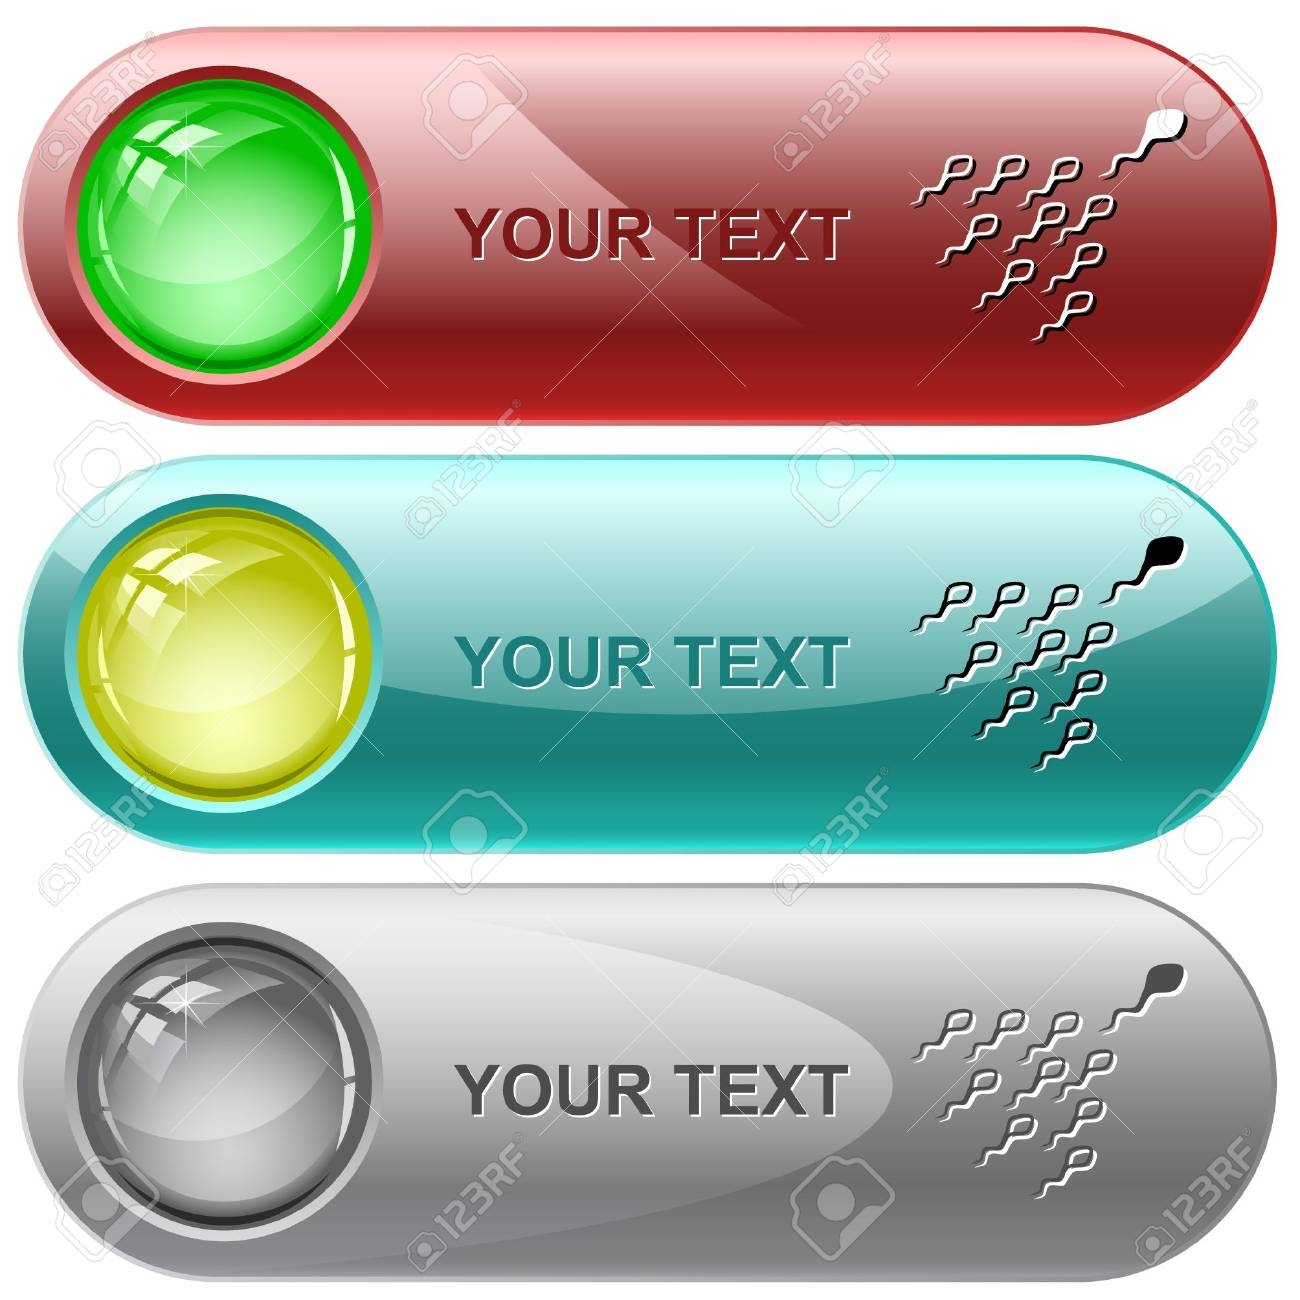 Spermatozoon. internet buttons. Stock Vector - 6776390